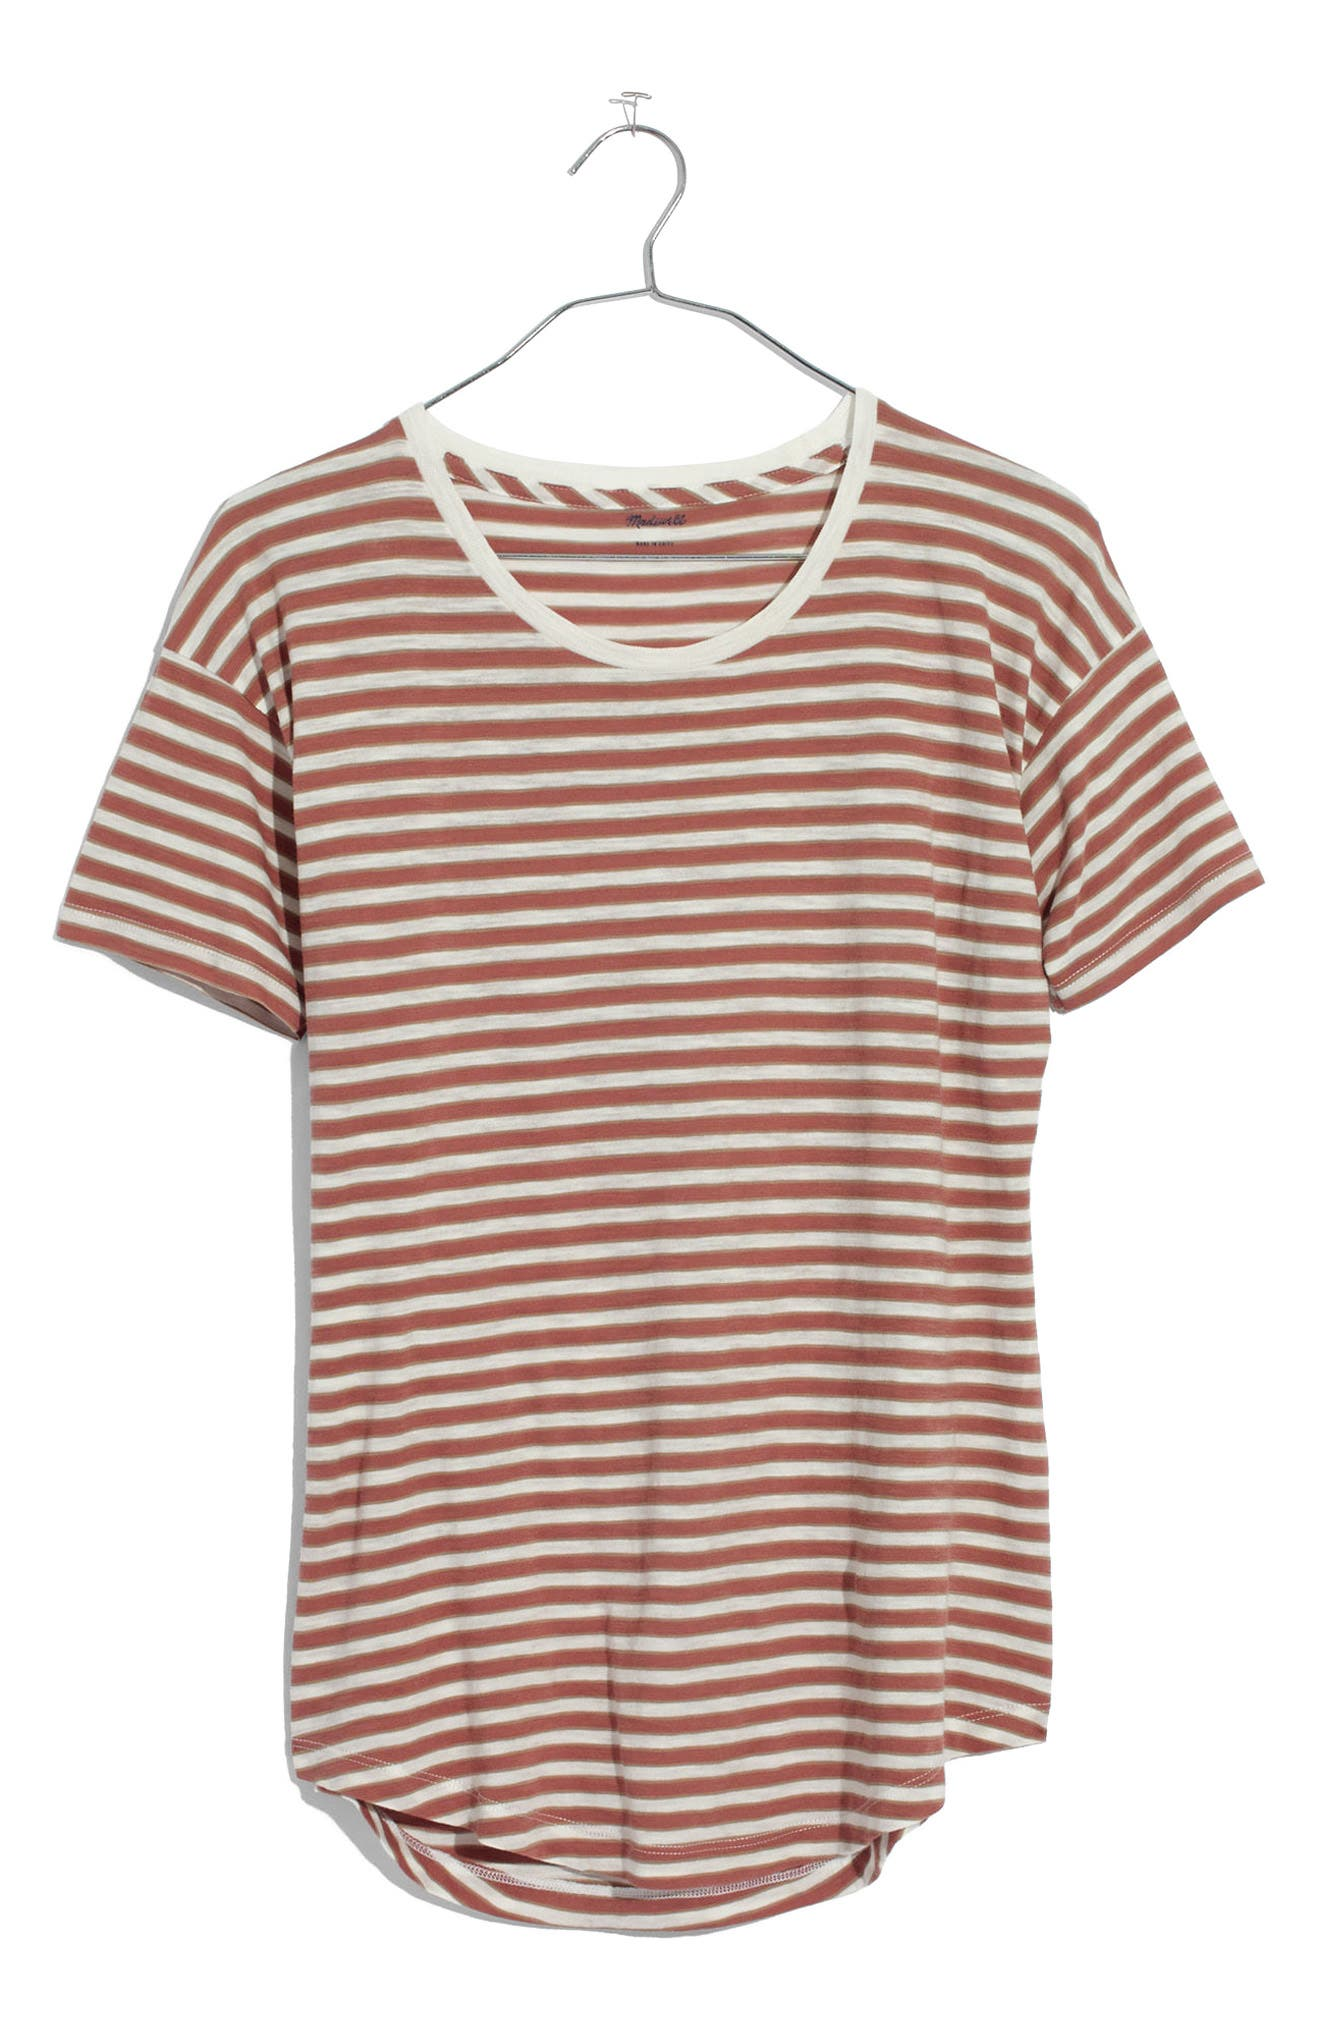 Main Image - Madewell Stripe Whisper Cotton Crewneck Tee